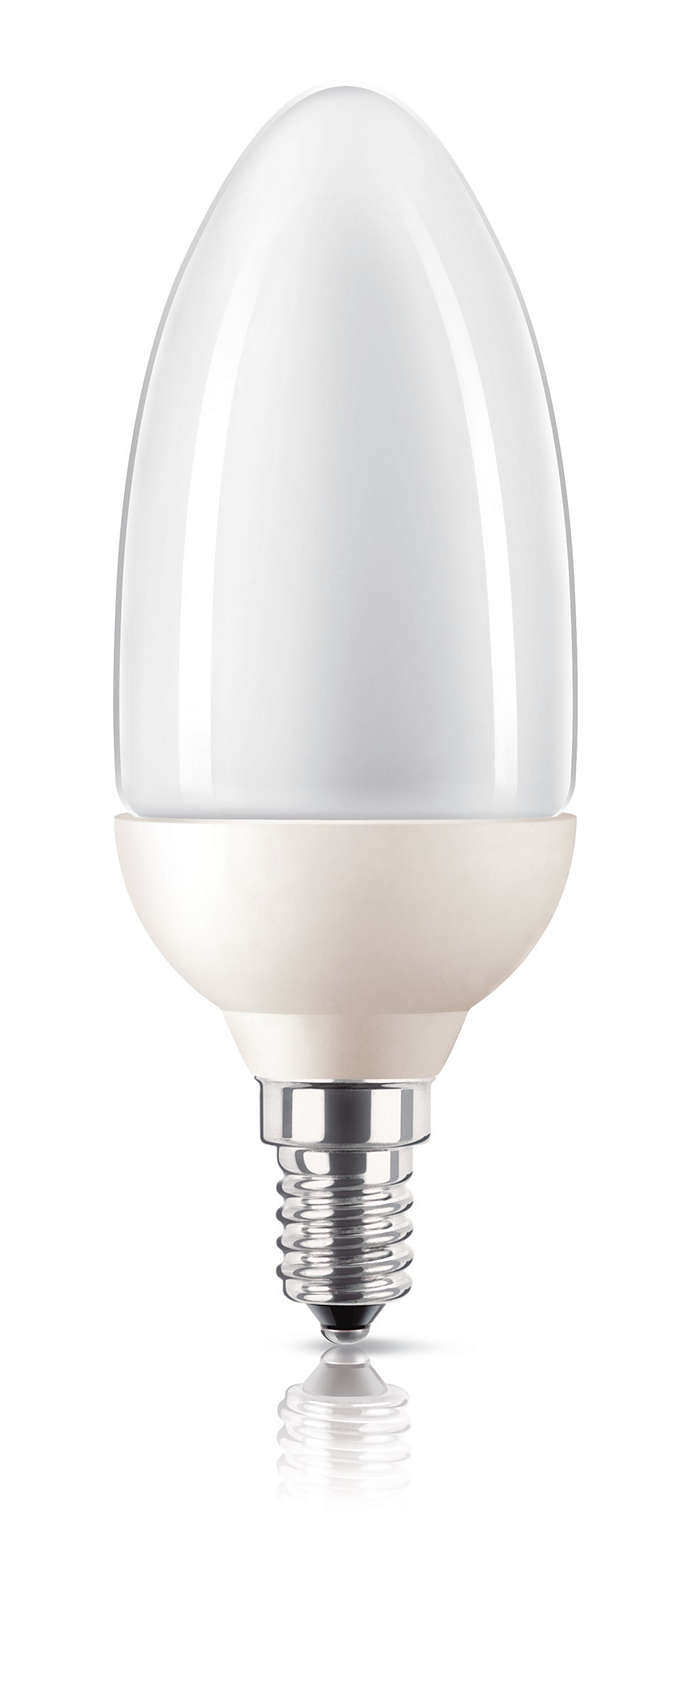 Soft and gentle energy saving light